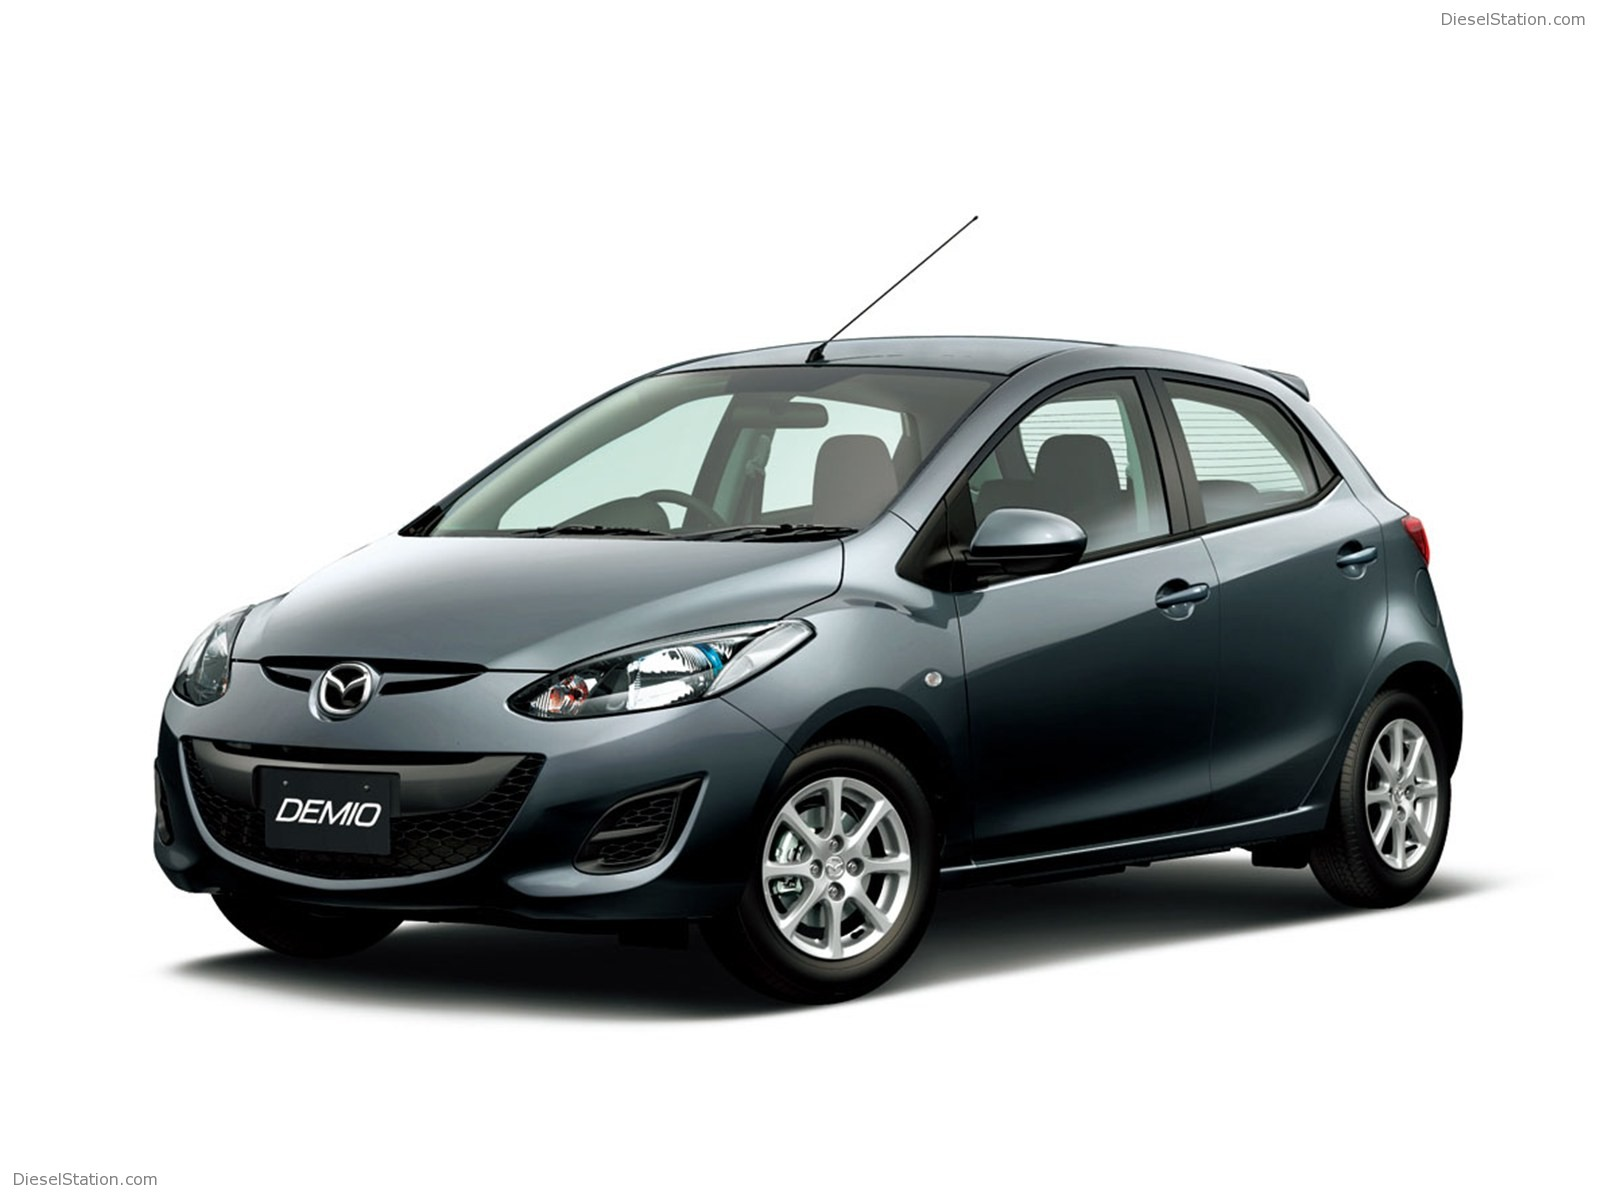 Mazda Demio 2012 - Car Wallpapers at Dieselstation